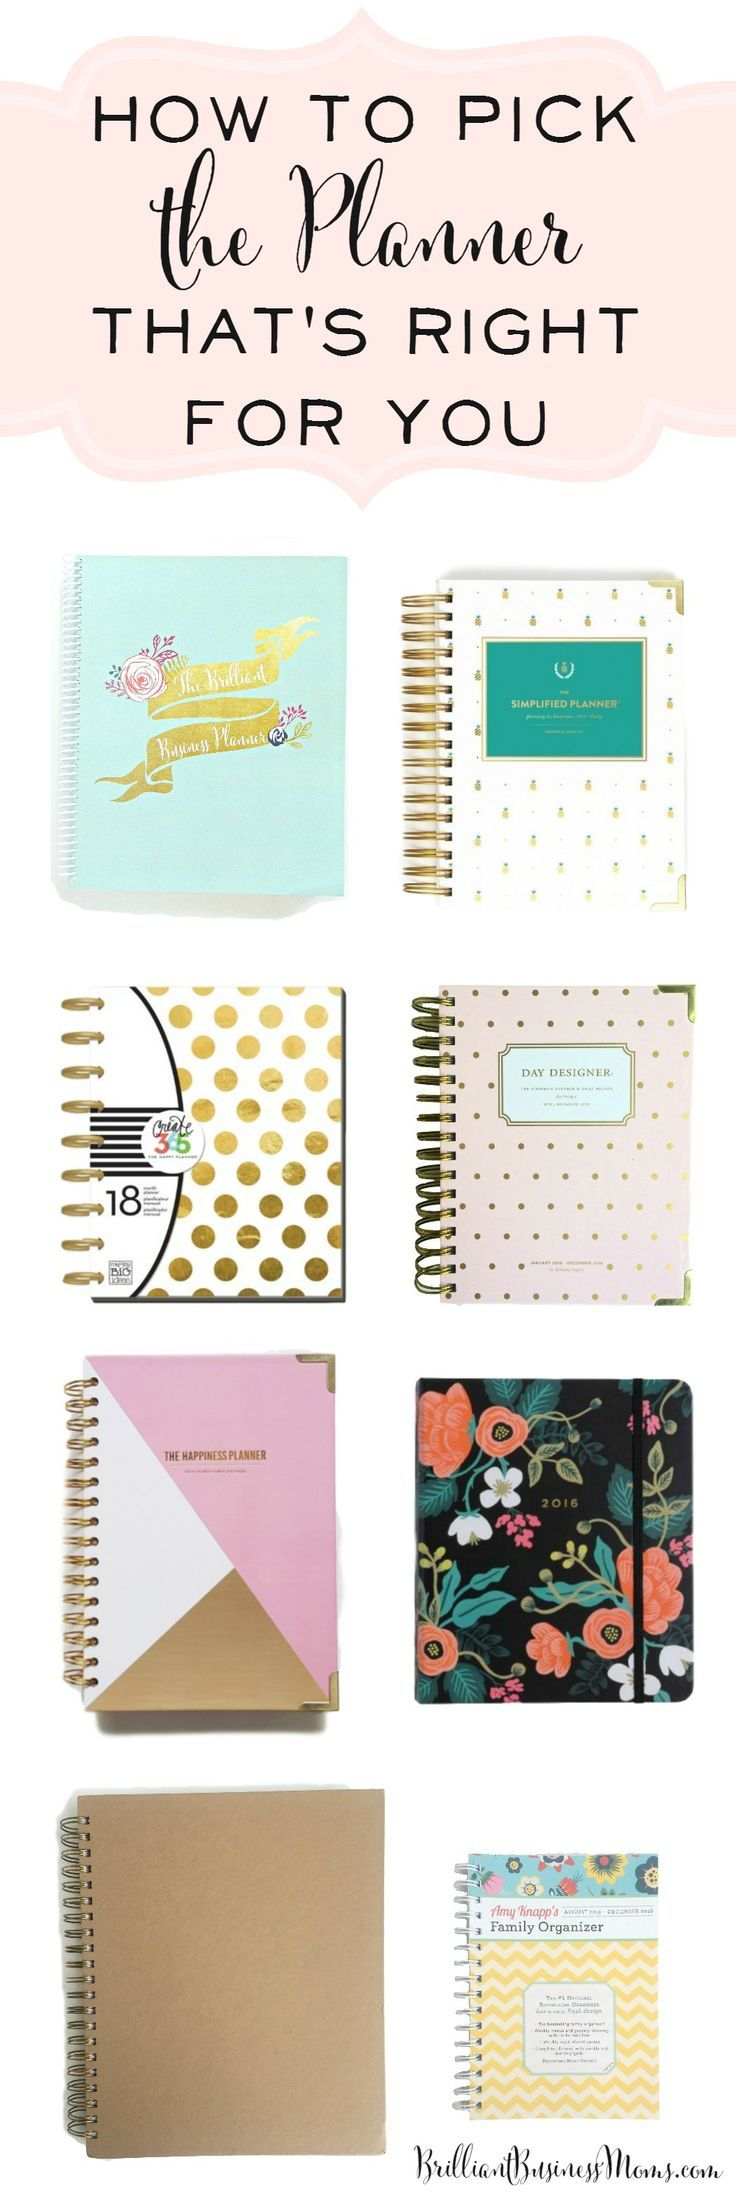 There are so many planner options available but how do you pick the planner that's right for you? Brilliant Business Moms will walk you through 8 completely different planners to show you the pros and cons of each, the different features they have, and help you pick the perfect planner for 2016. Planner Reviews. Simplified Planner, DayDesigner, Rifle Paper Co. Living Well Planner, Happiness Planner, and more | brilliantbusinessmoms.com